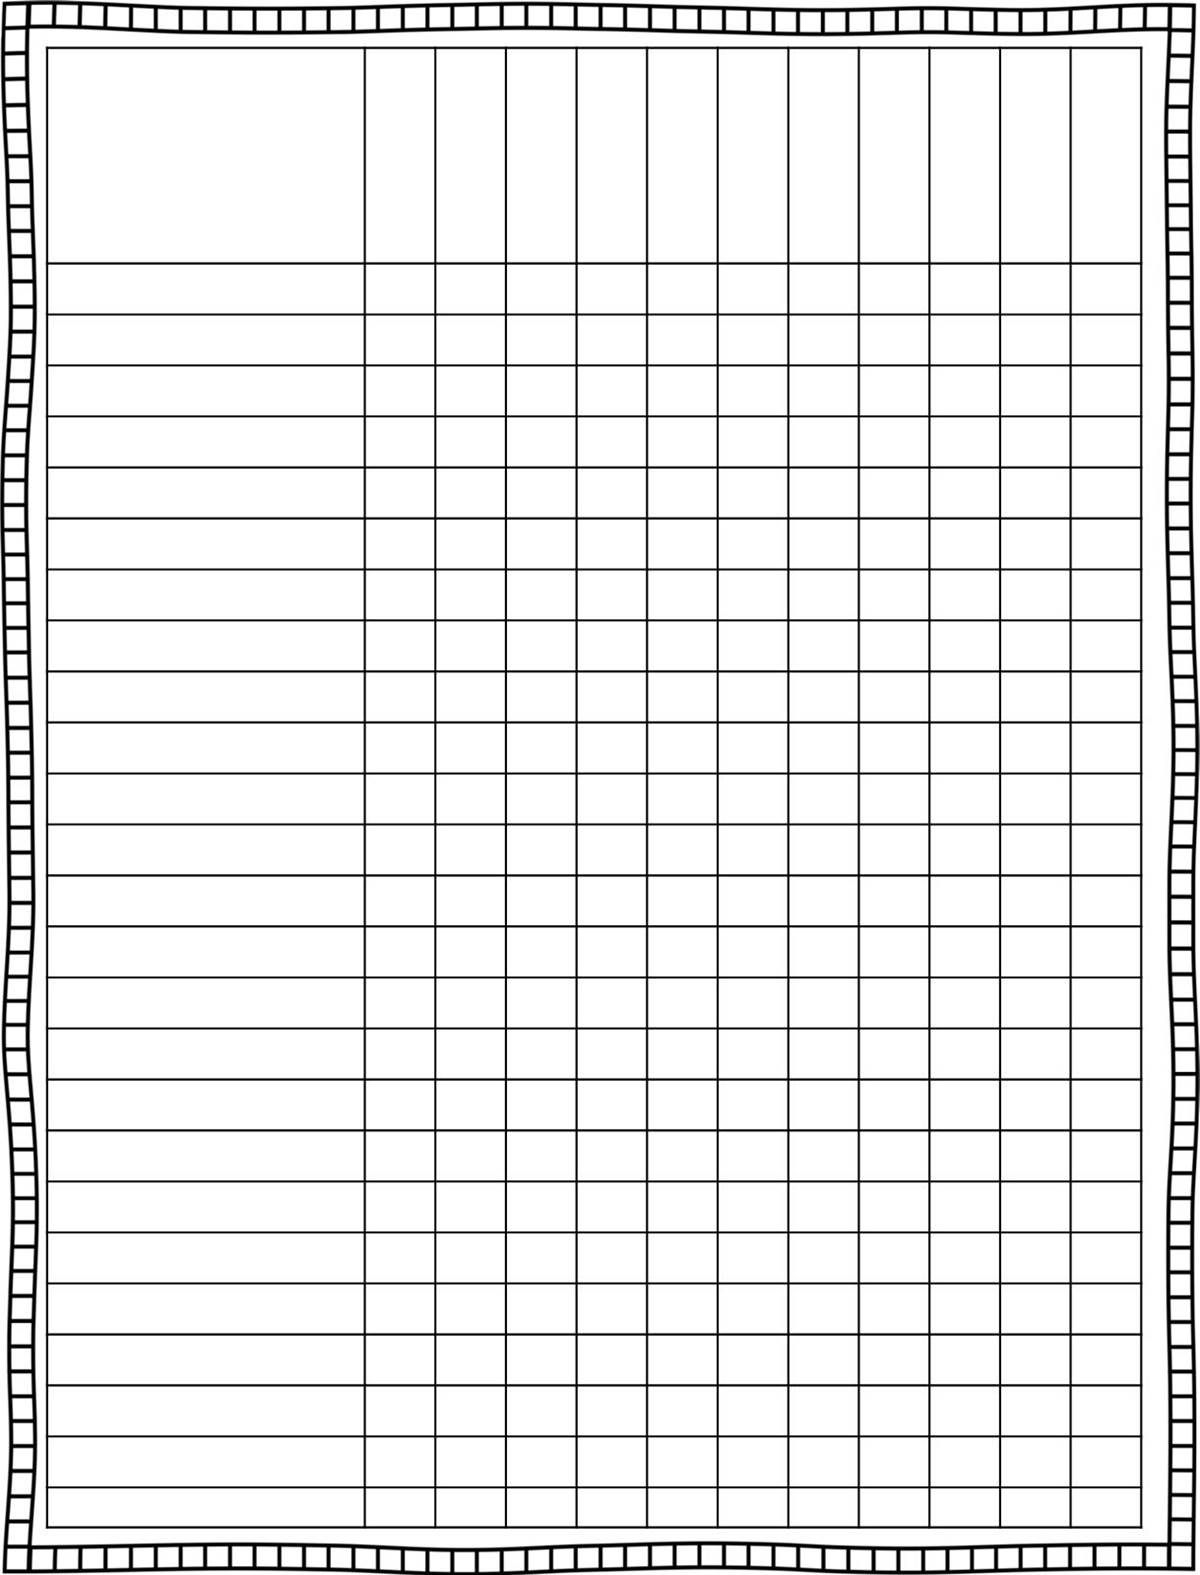 Classroom schedule template for teachers finally a cute for Tracking sheet template for teachers